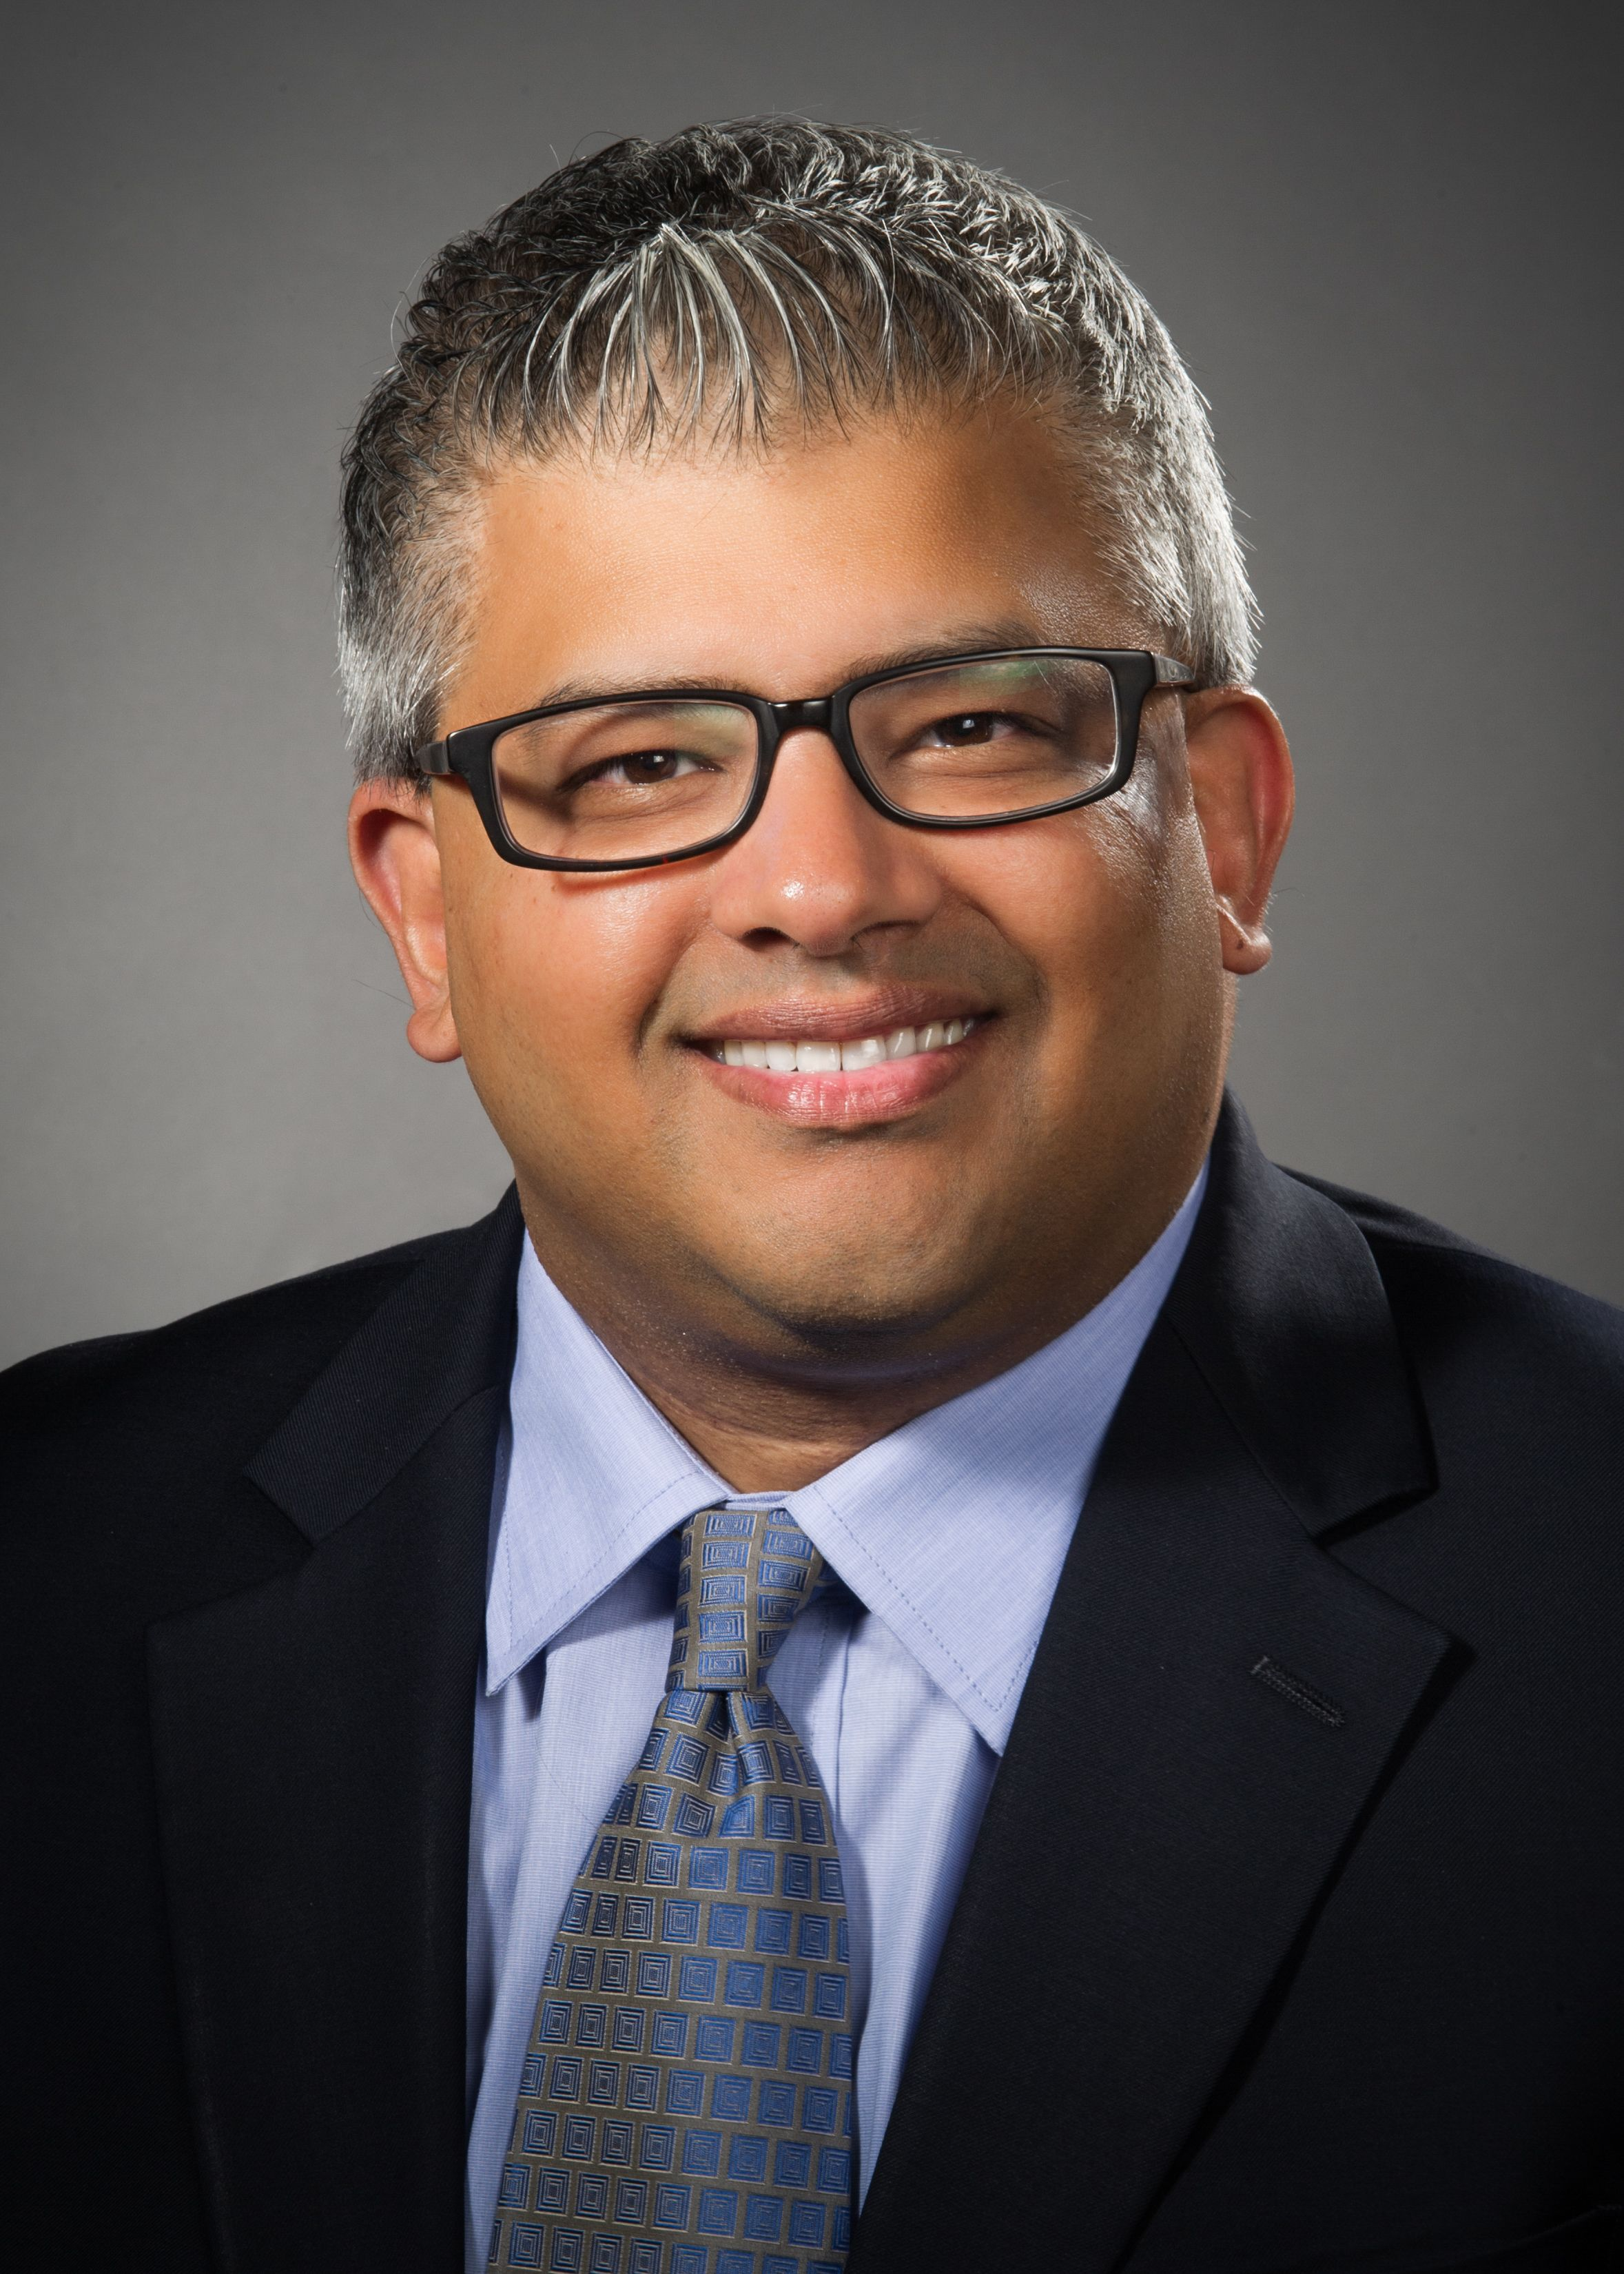 Amit Garg, MD, wearing a blue shirt and blue tie